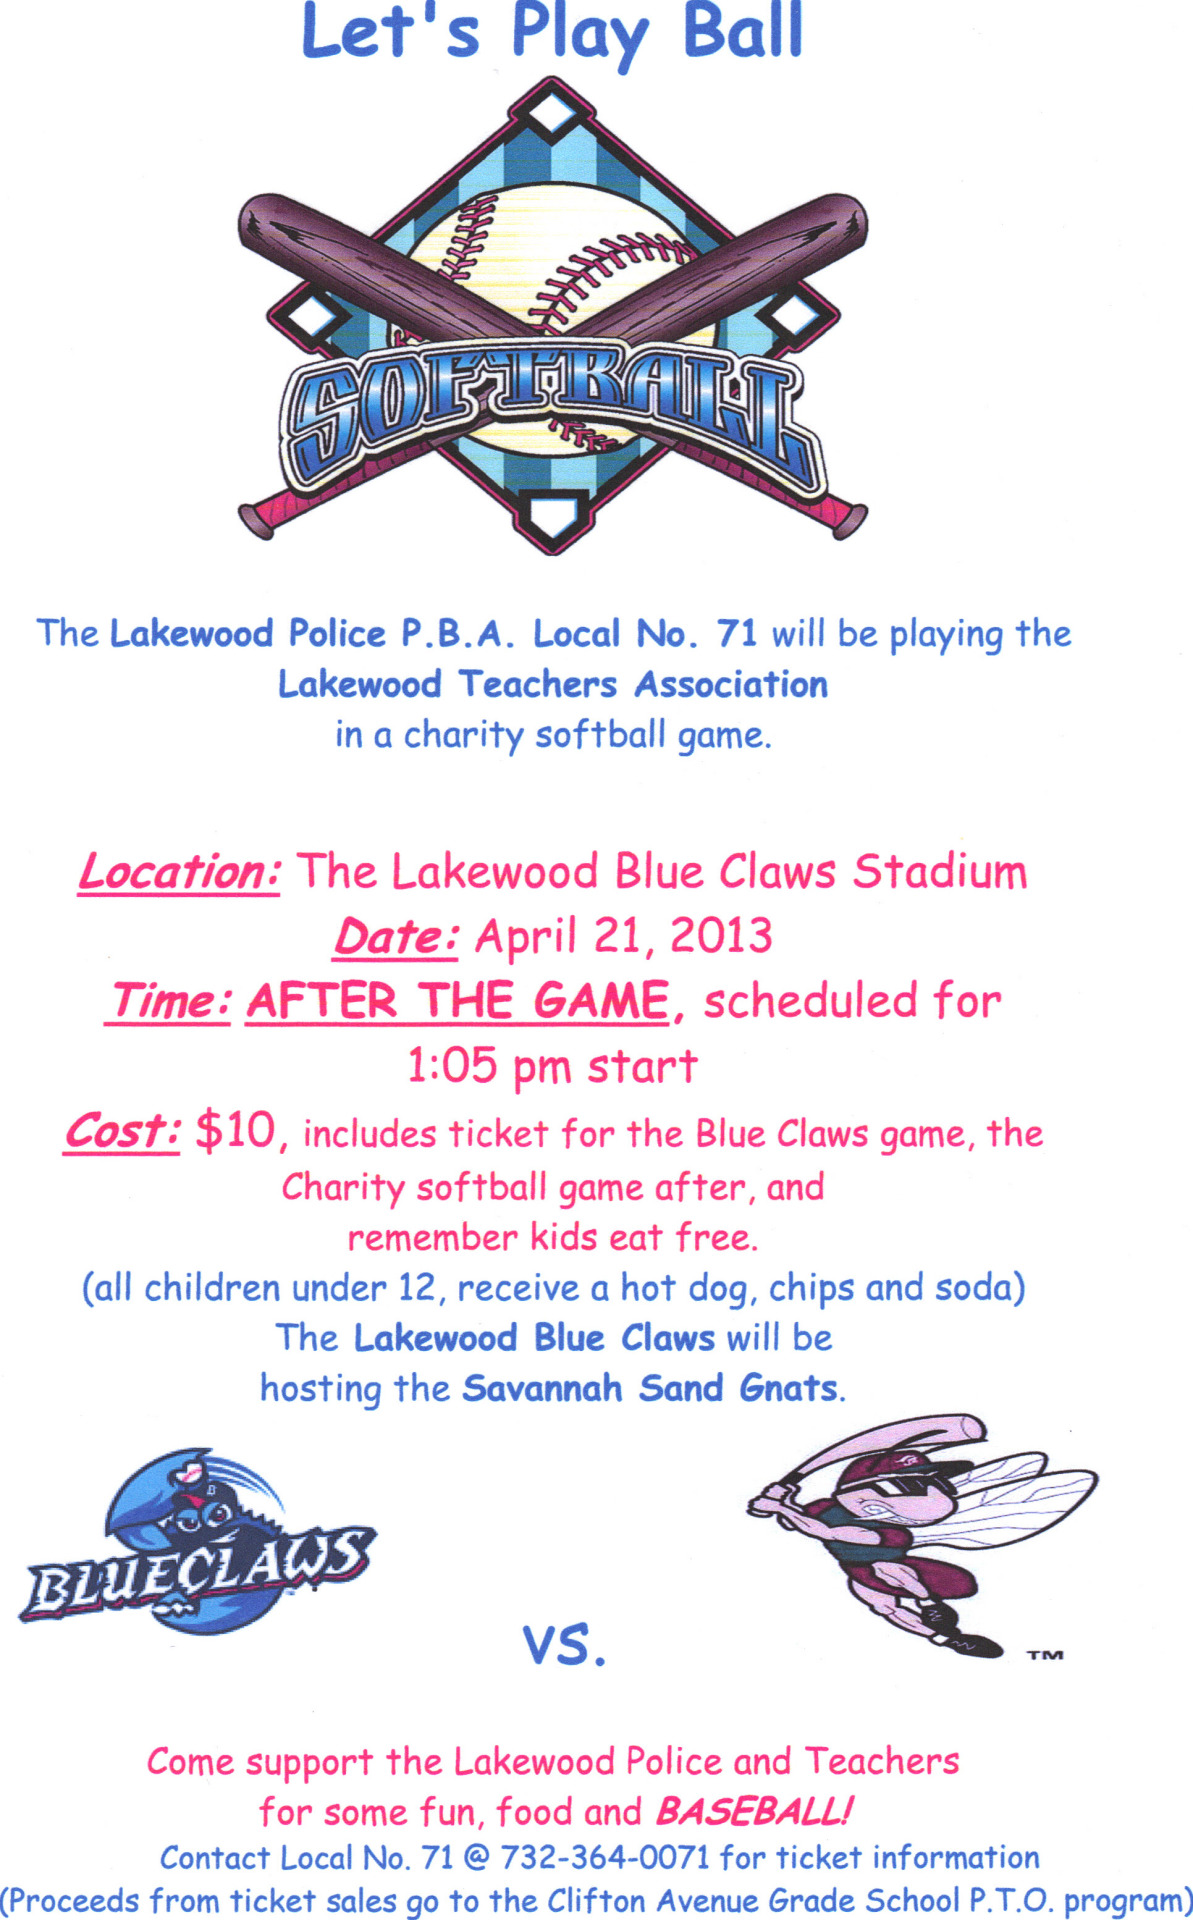 Dear Friends and Family,The Lakewood Police P.B.A. Local No. 71 will be playing the Lakewood Teachers Association in a charity softball game on Sunday April 21,2013. We will be playing at the Lakewood Blue Claws Stadium after their scheduled game against the Savannah Sand Gnats @ 1:05pm. Tickets will be available next week for $10 per person. Ticket prices will include entry to the baseball game, the charity game against the teachers after and all kids 12 and under eat for free. Please feel free to contact us here on Facebook, or call us at 732-364-0071 for any ticket information.Come on out to support your favorite team, and proceeds help support the Clifton Avenue Grade School P.T.O. Program. We look forward to seeing you all at the game!!!As always, we thank you for your continued support!